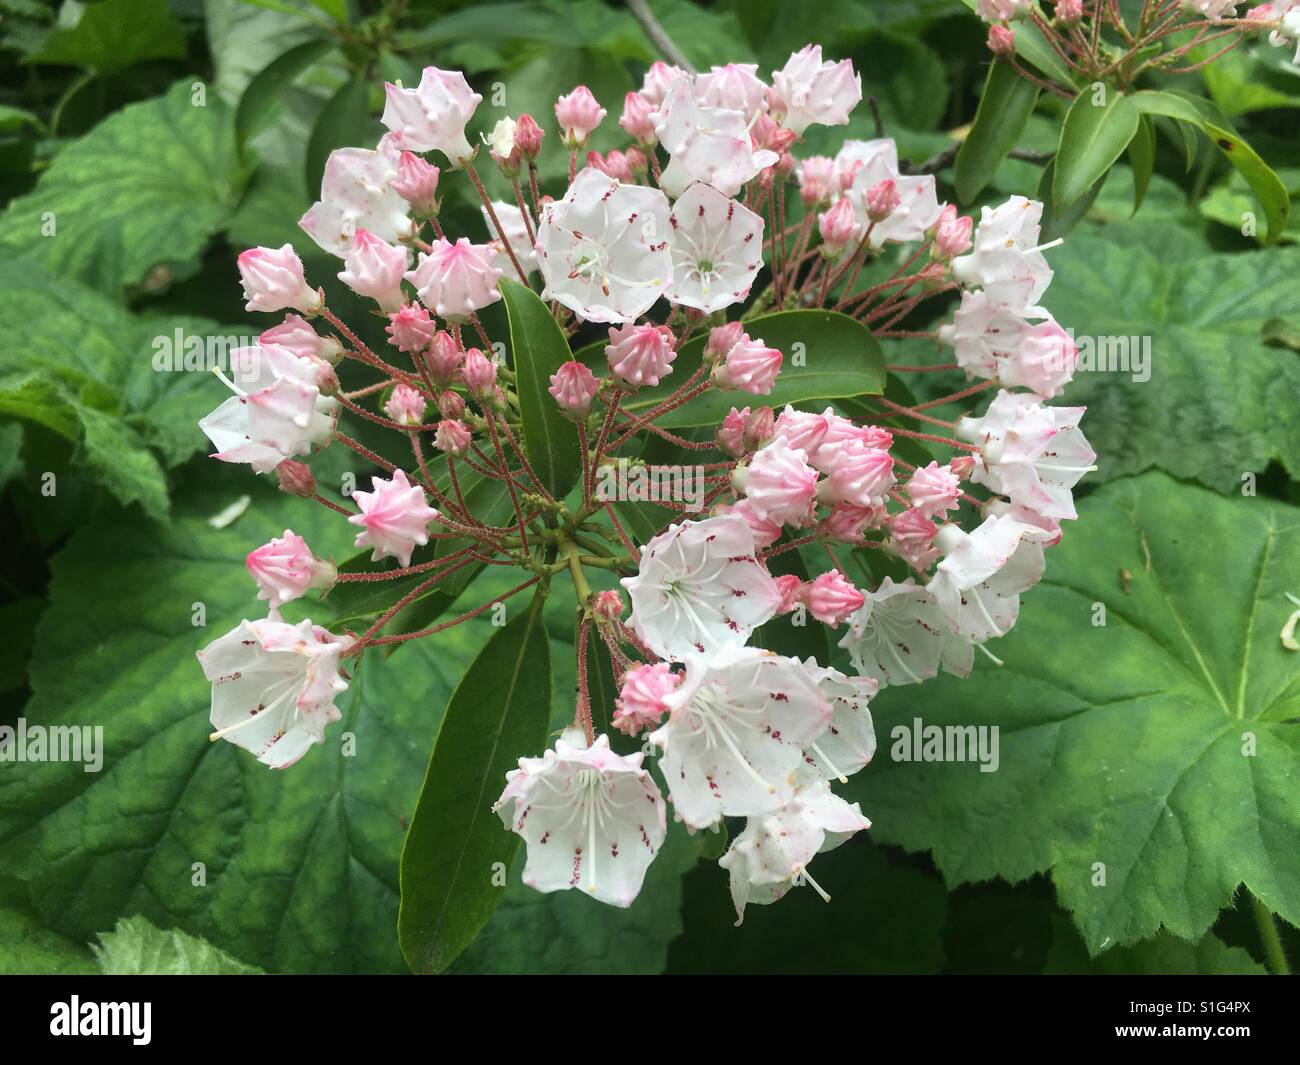 Tiny pink flowers stock photos tiny pink flowers stock images alamy tiny pink flowers stock image mightylinksfo